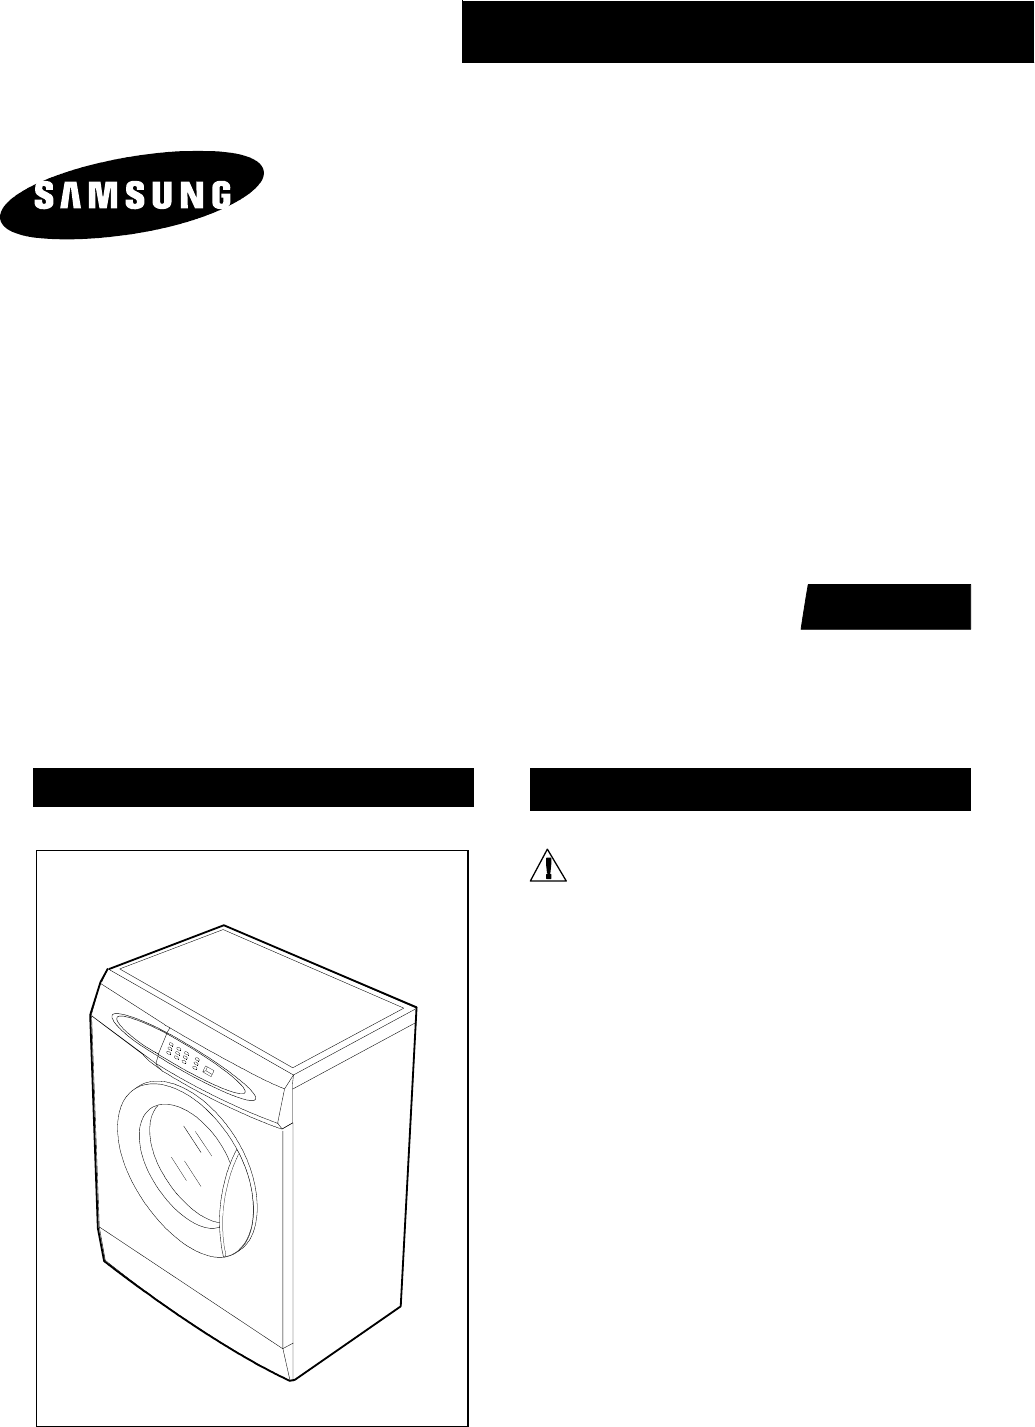 Pdf samsung washer user manual 28 pages page 14 of samsung manualsonline samsung washer user manual samsung washer r1031gws ylr user guide manualsonline fandeluxe Image collections